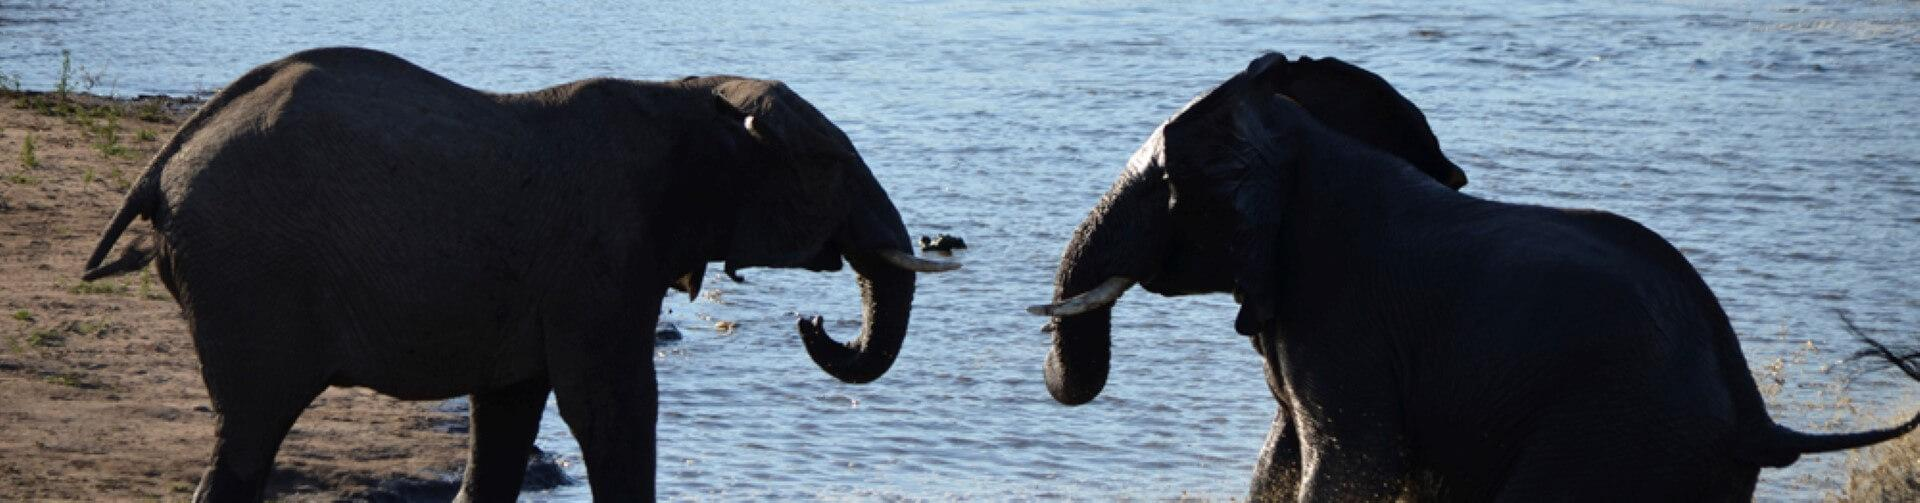 Elephants in the water at Kruger Park